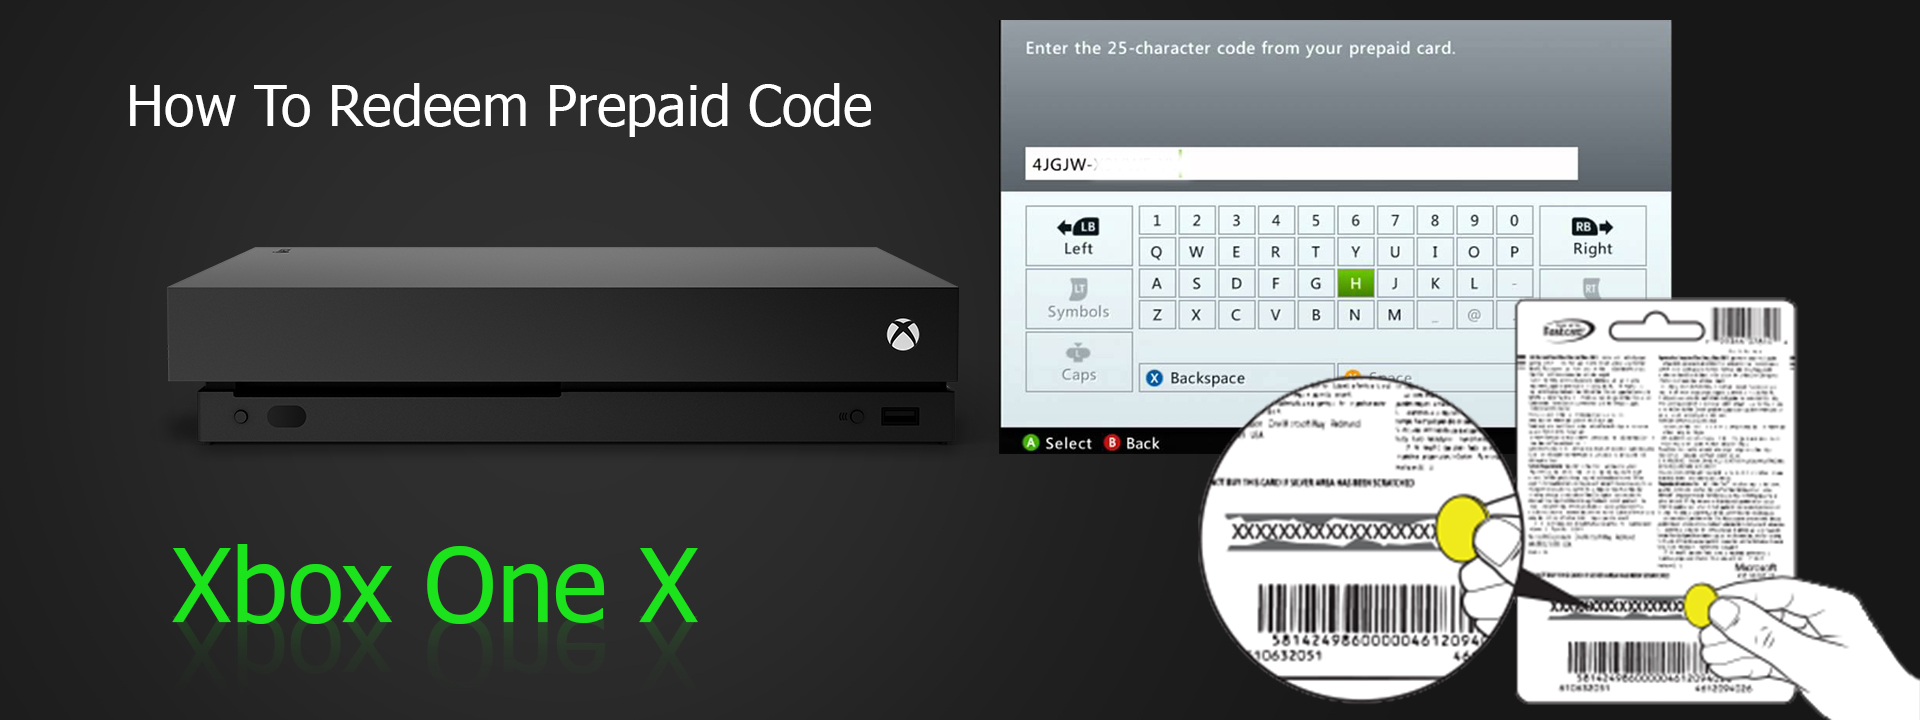 Redeem Prepaid Code On Xbox One X - How  To